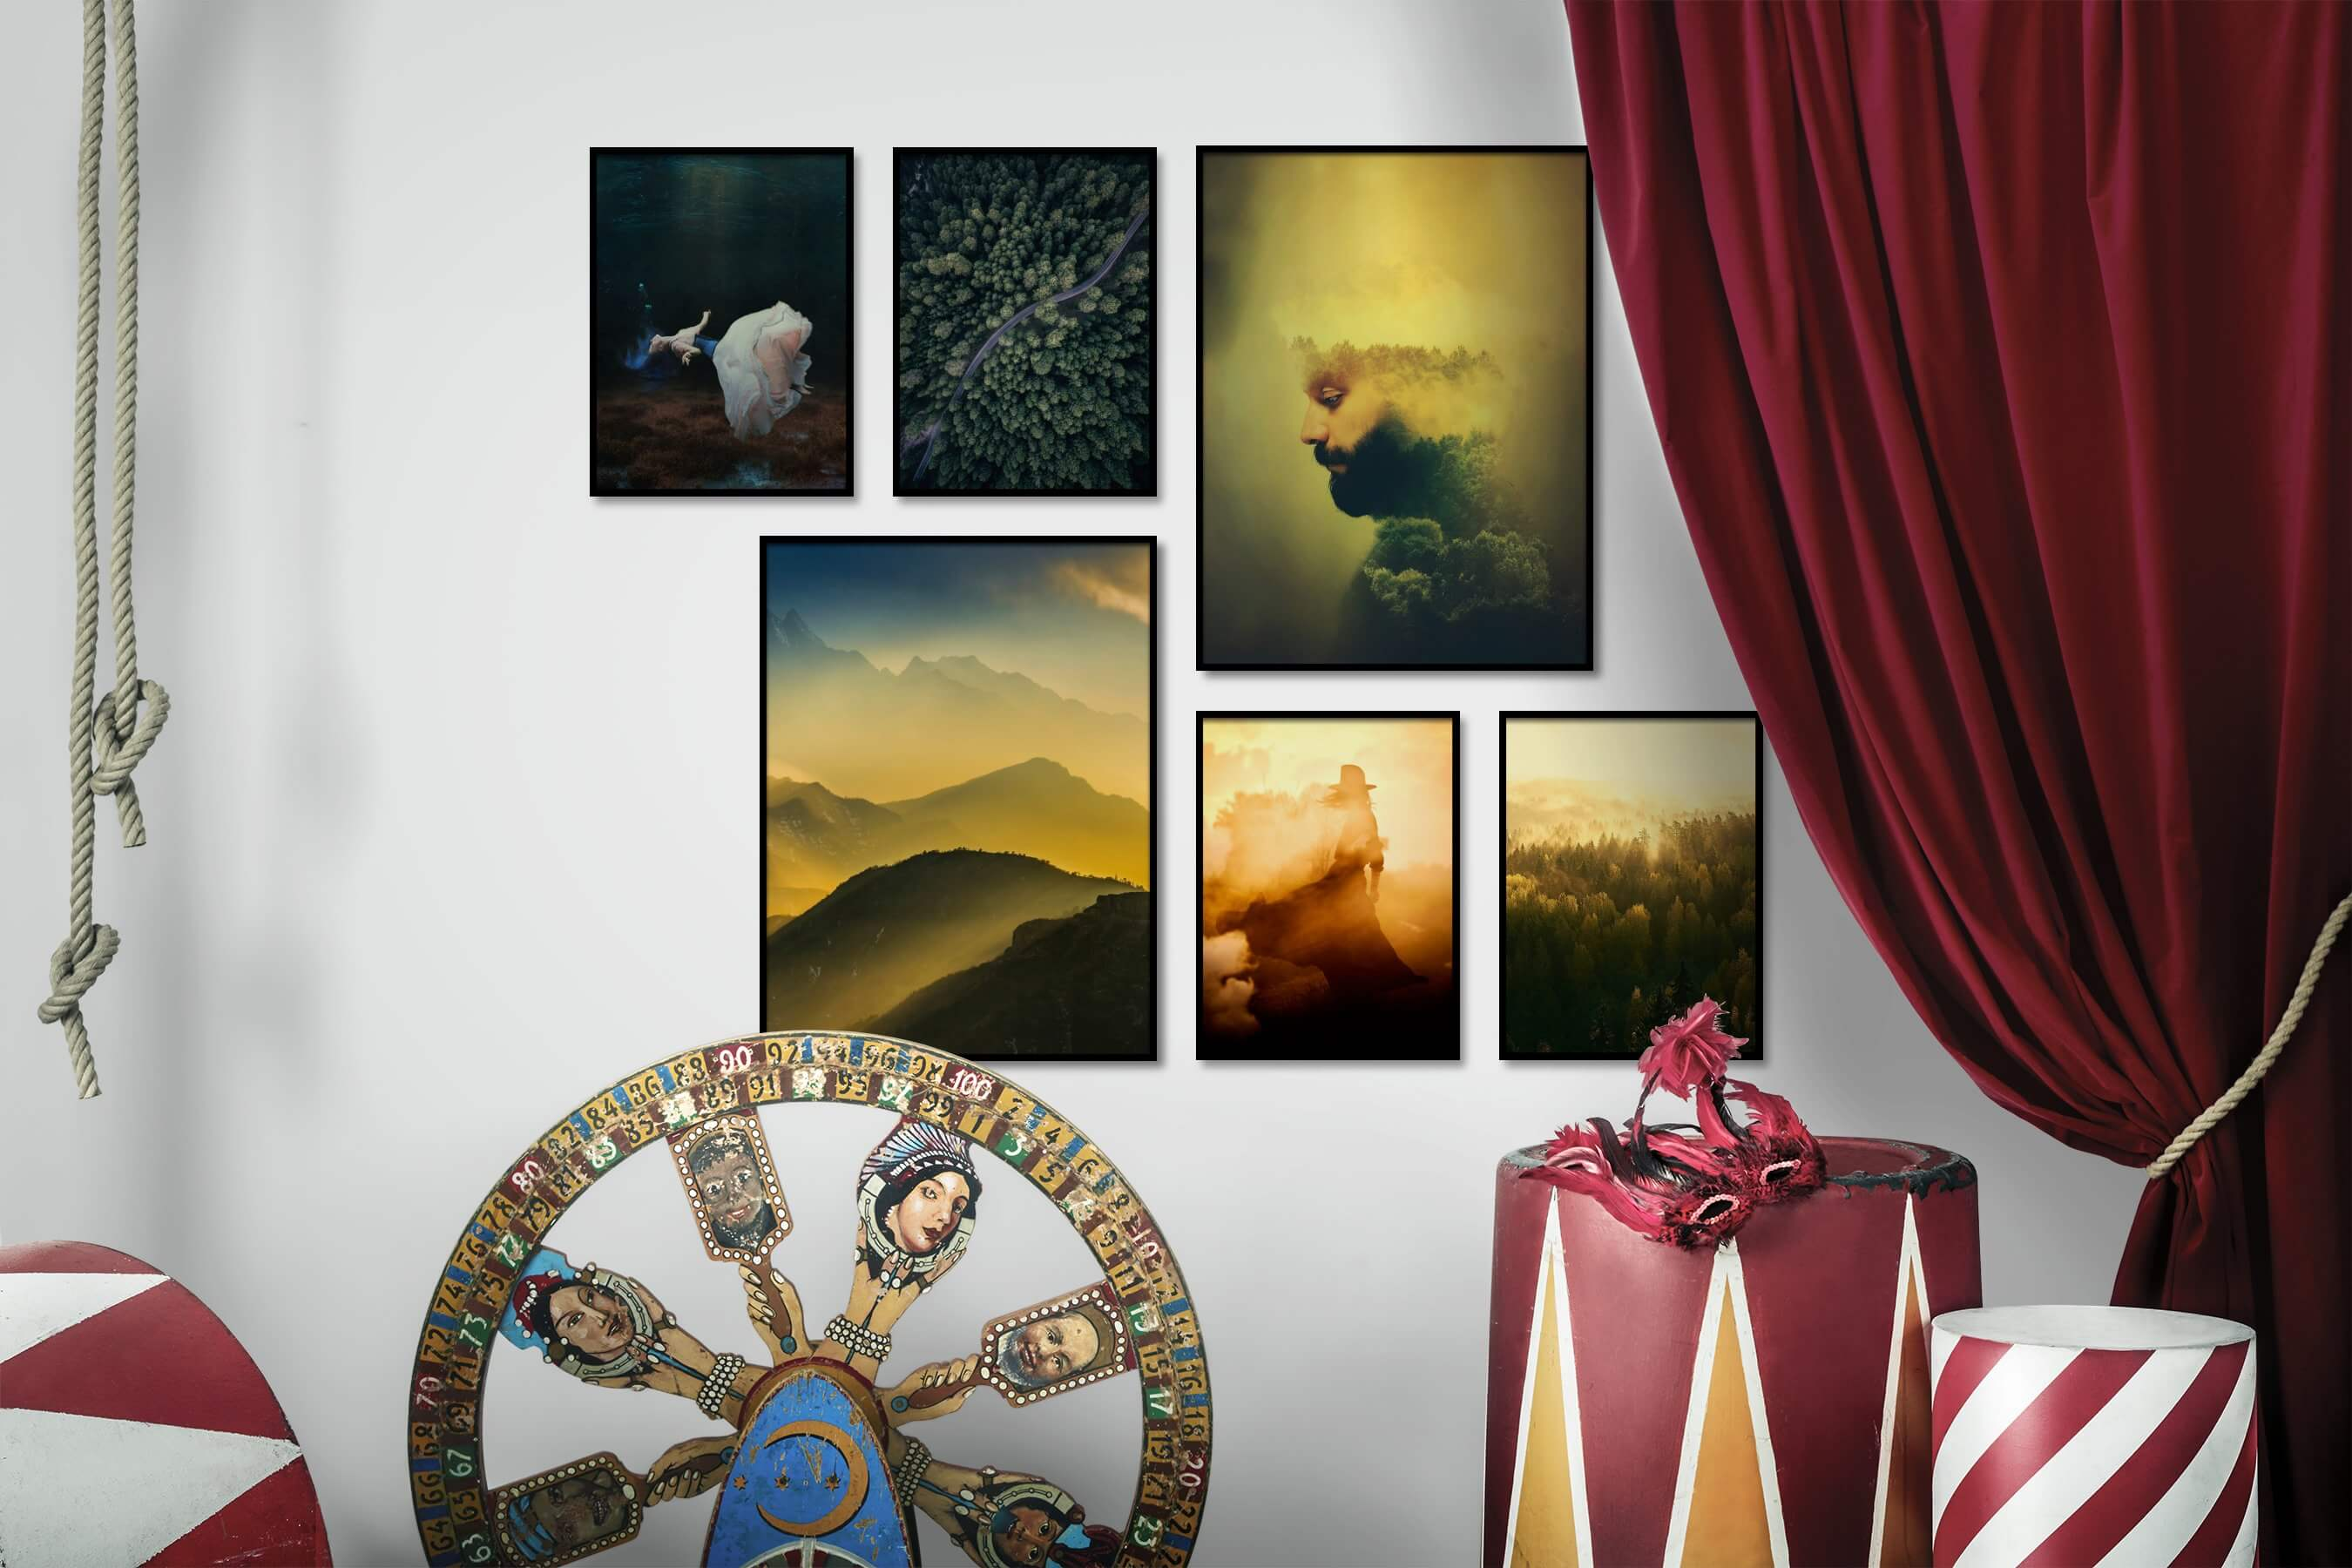 Gallery wall idea with six framed pictures arranged on a wall depicting Fashion & Beauty, Beach & Water, For the Moderate, Nature, Artsy, Mindfulness, and Vintage